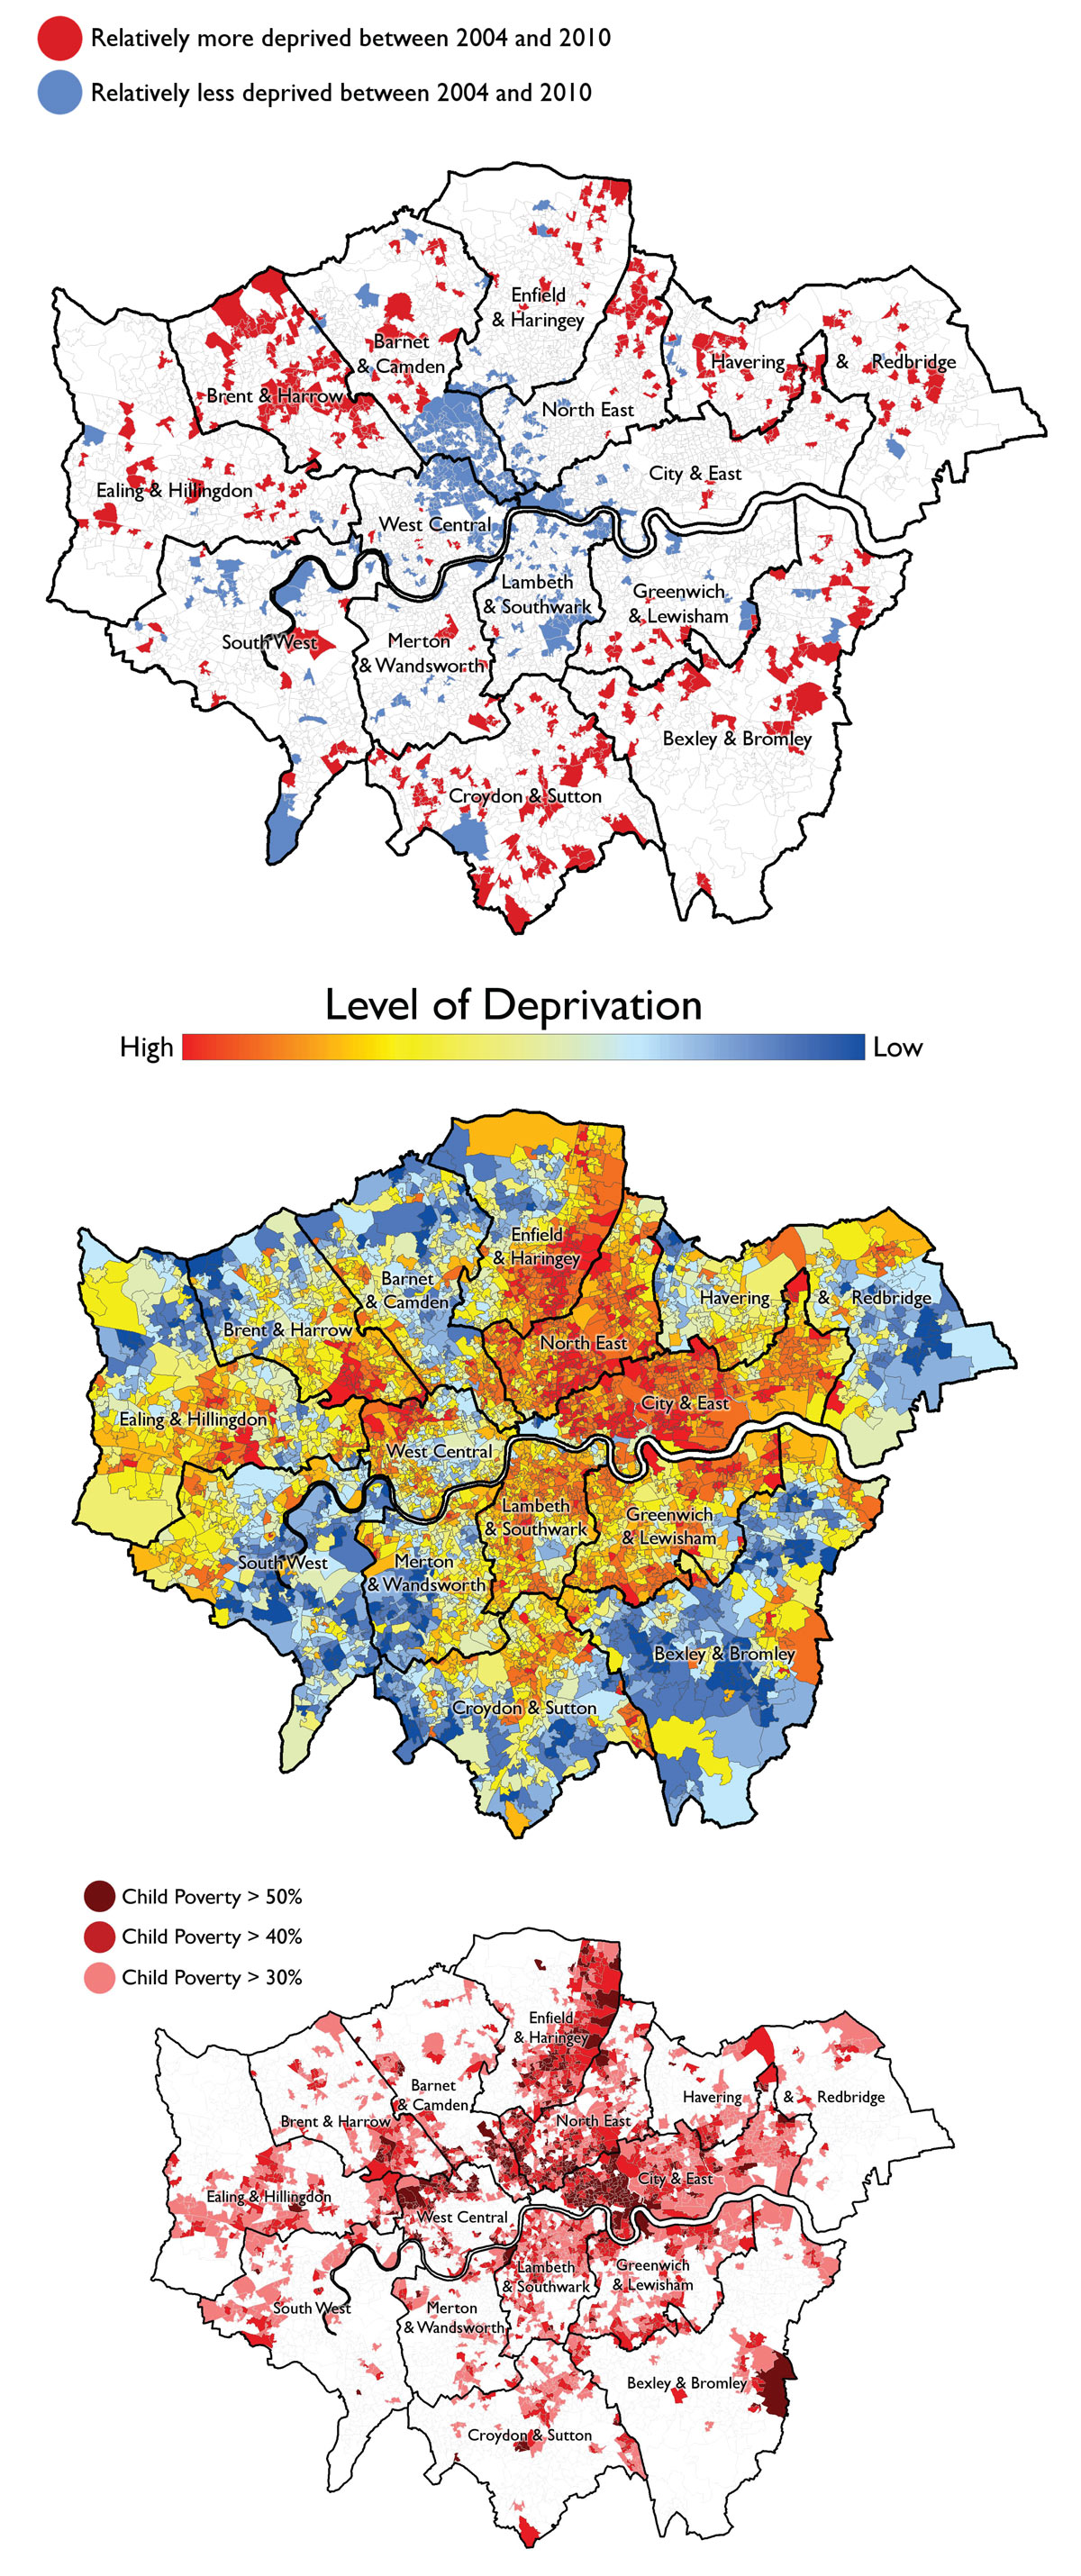 Map Of London With Neighborhoods.Deprivation And Poverty In London Get The Data Uk News